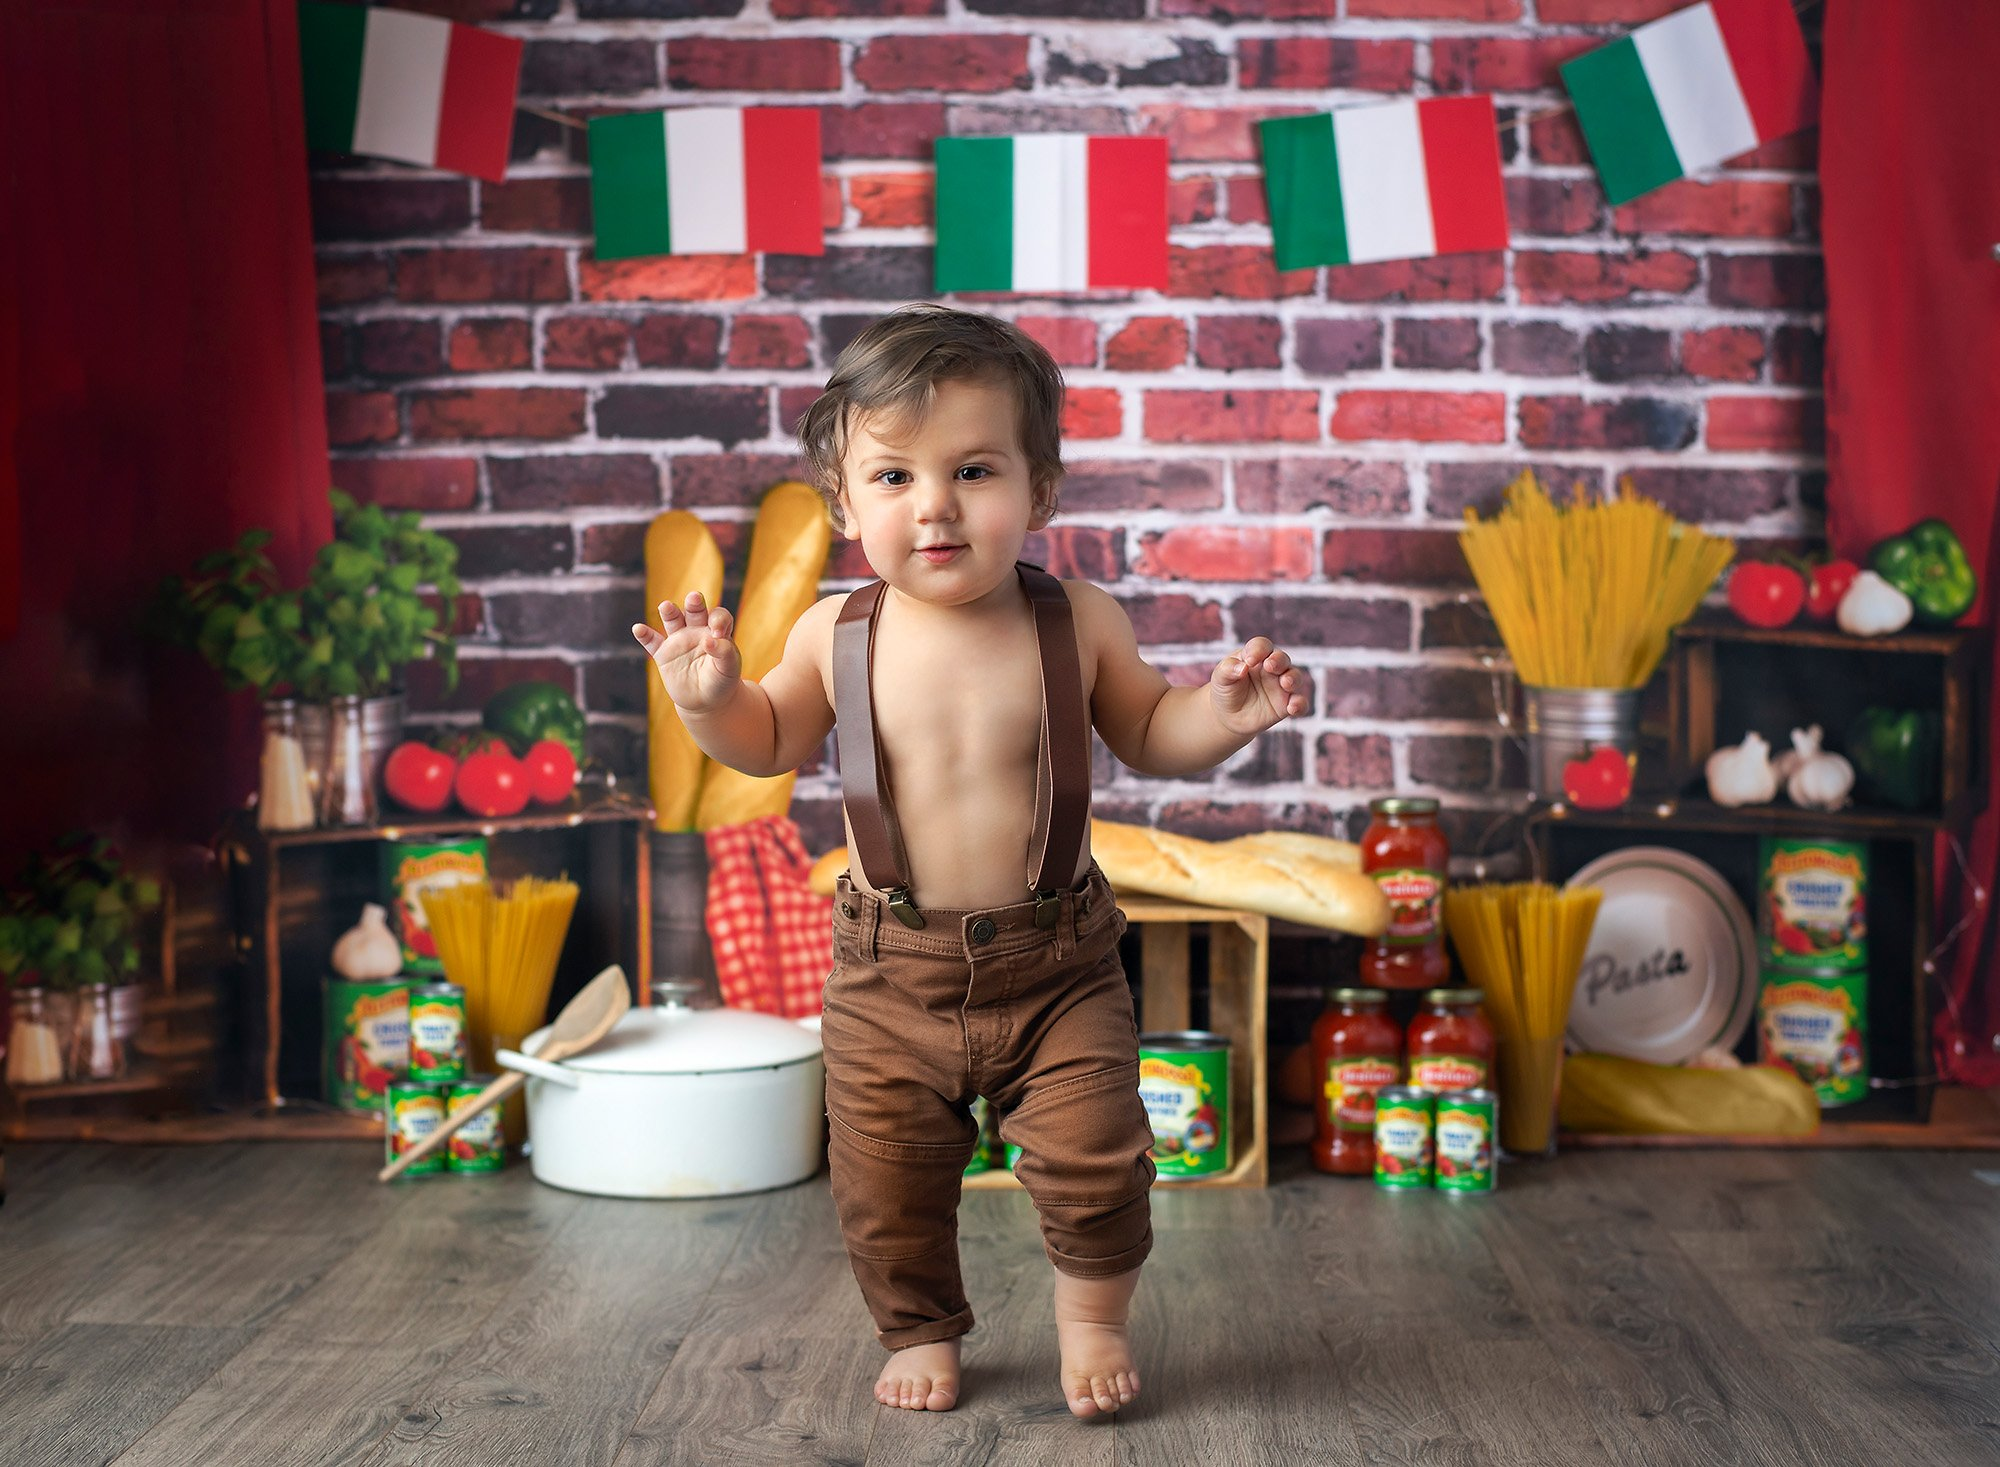 1 year baby photoshoot spaghetti smash one year old boy walking in overalls with Italian flags, Italian bread, pasta and jars of sauce in background